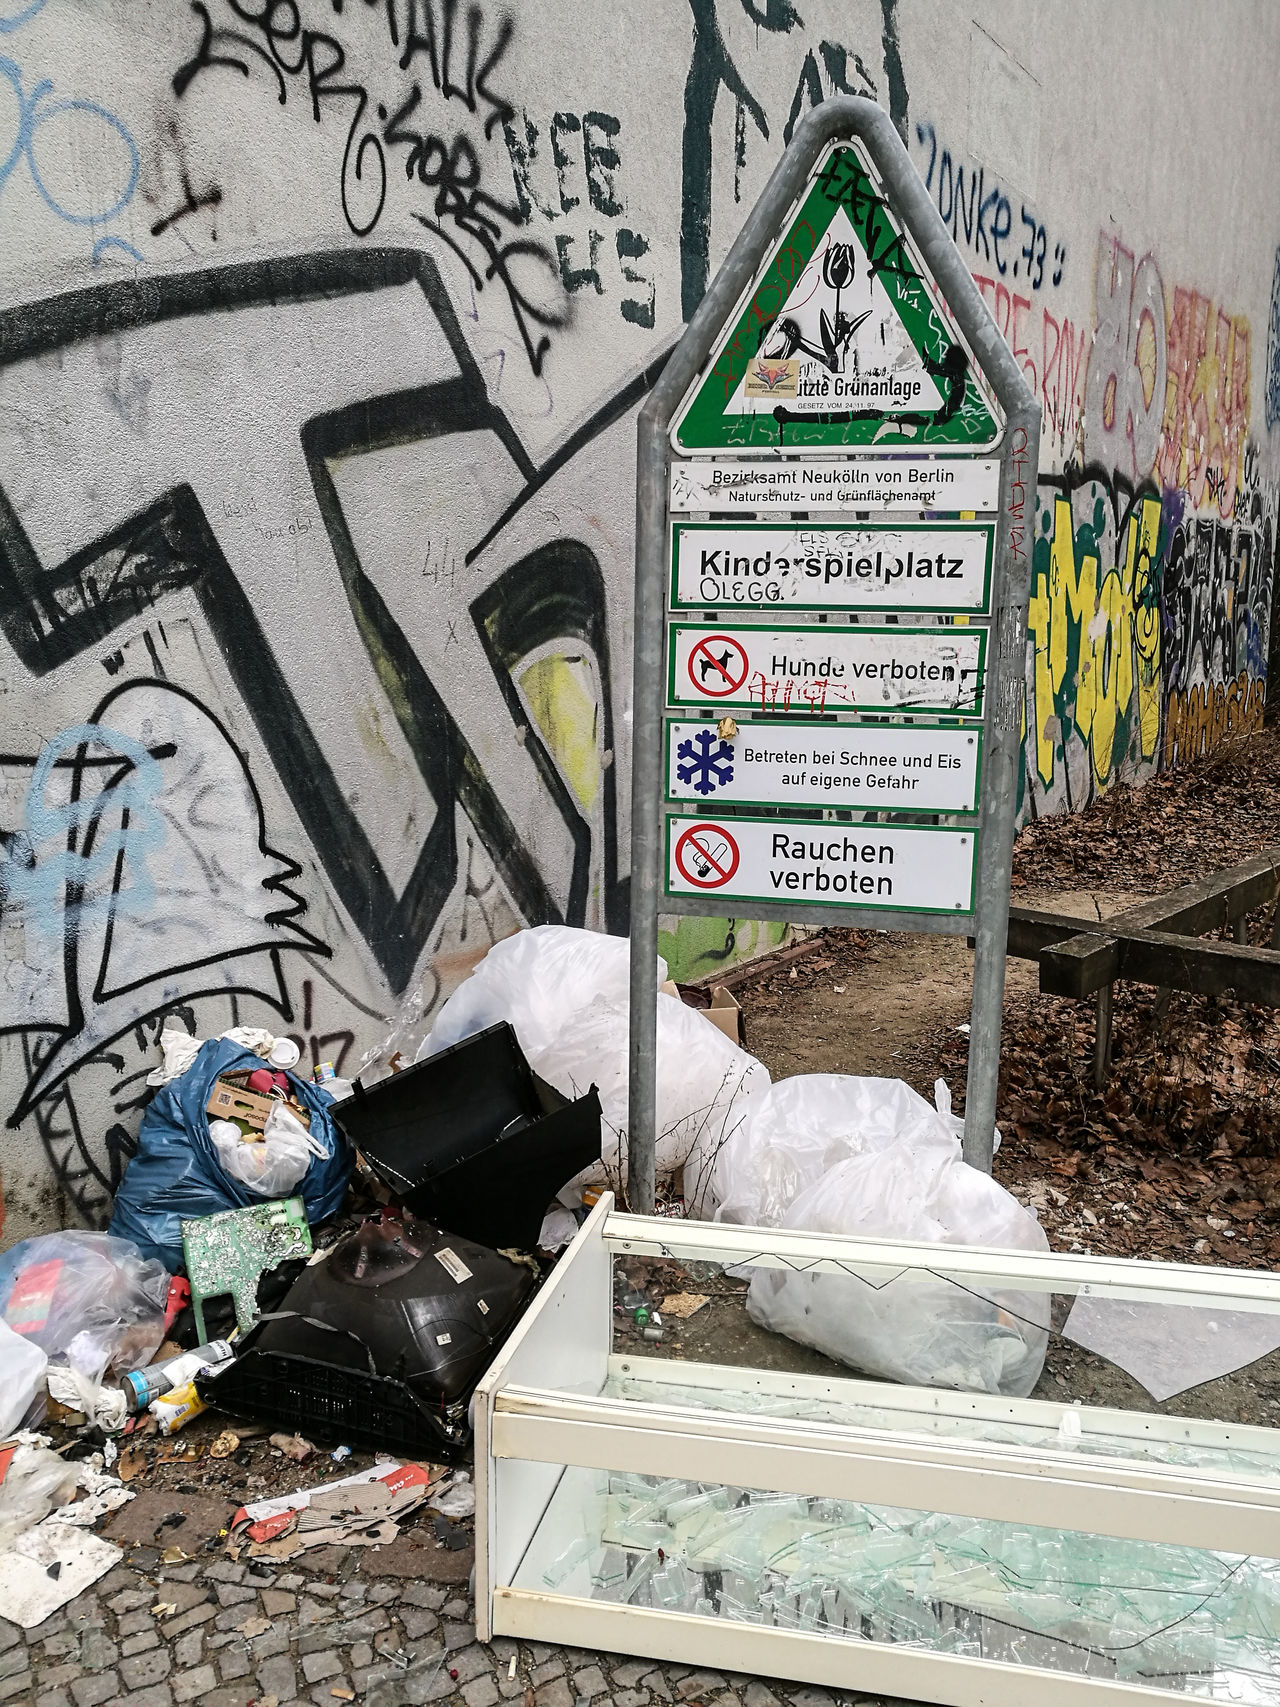 Berlin Berlin Photography Berliner Ansichten Day Dreck Garbage Müll Neukölln Street Text Unhygienic Waste Wasted